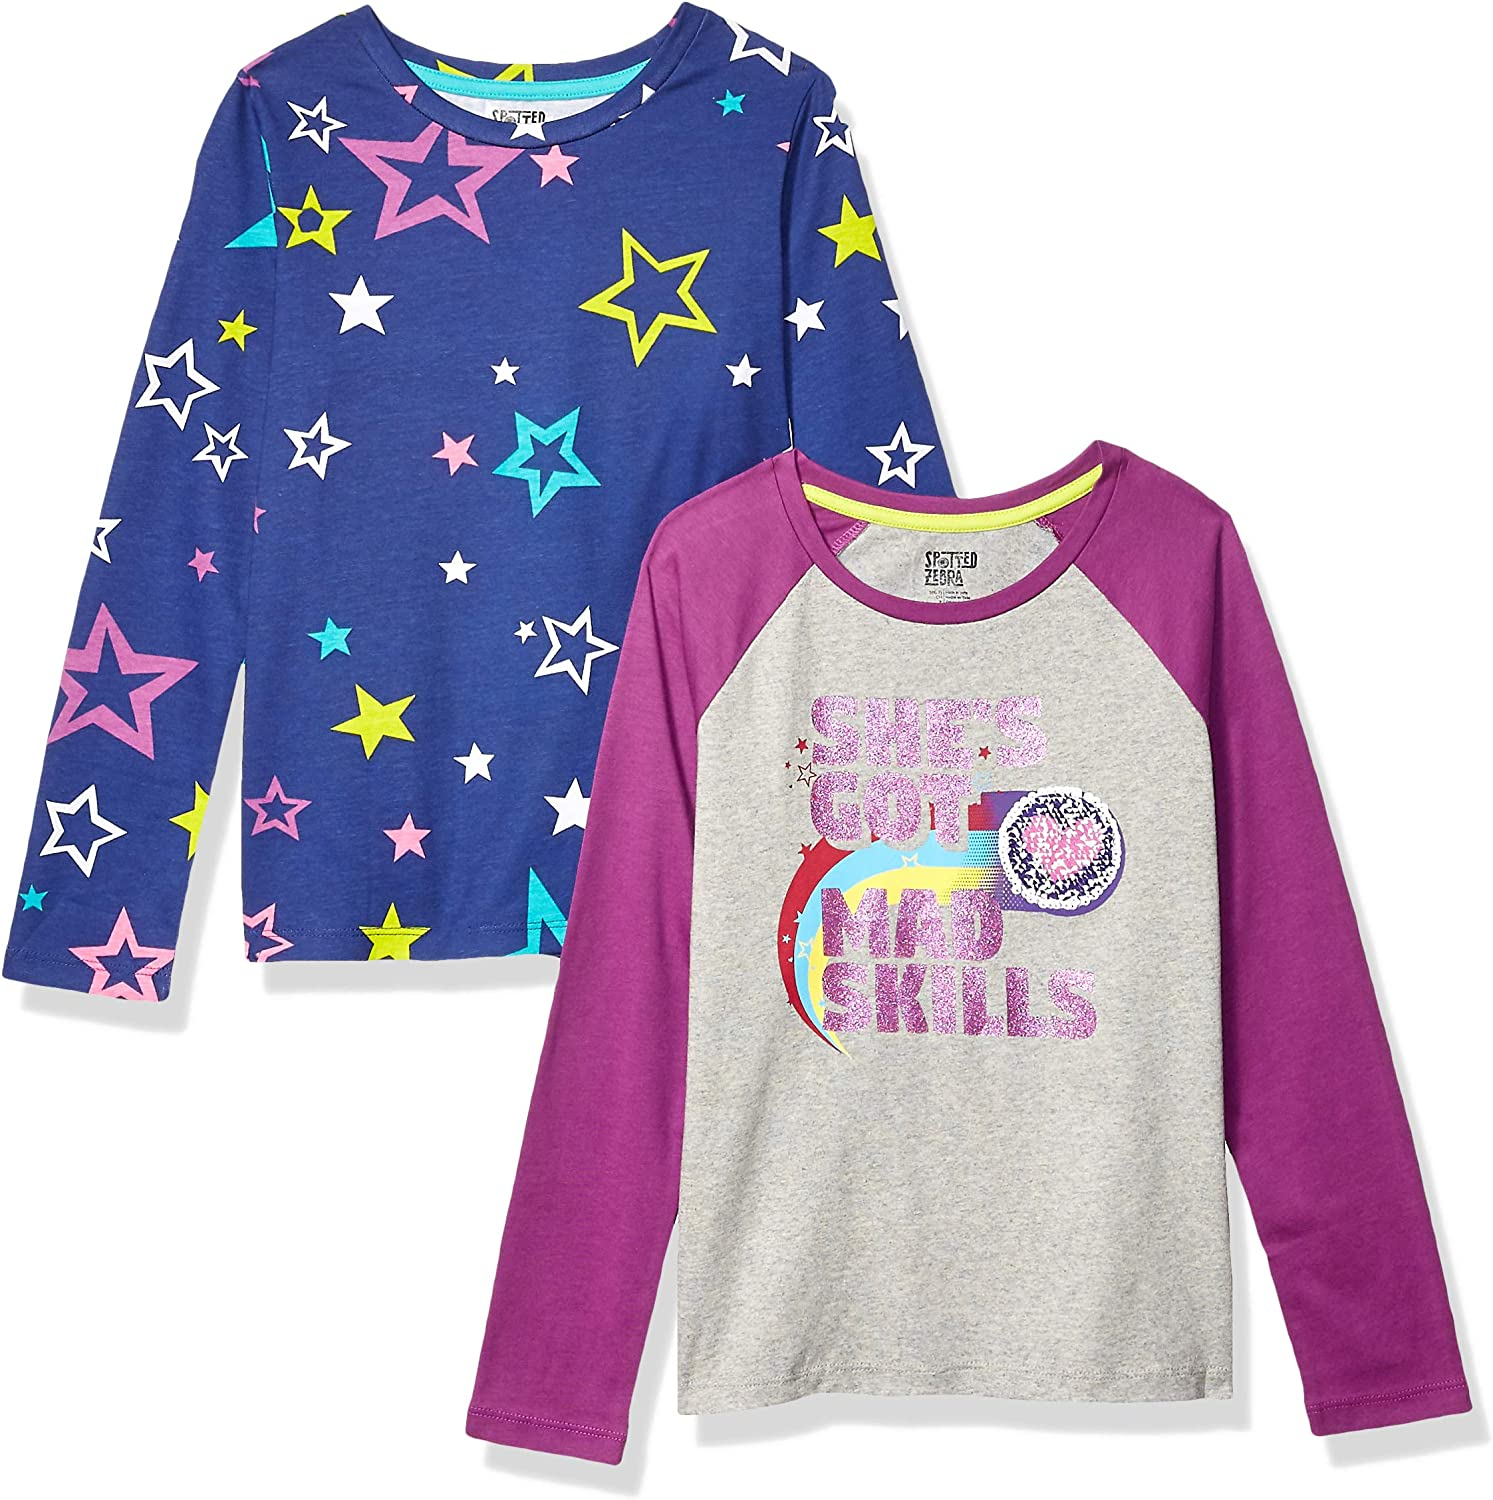 Spotted Zebra Girls Toddler /& Kids 4-Pack Long-Sleeve T-Shirts